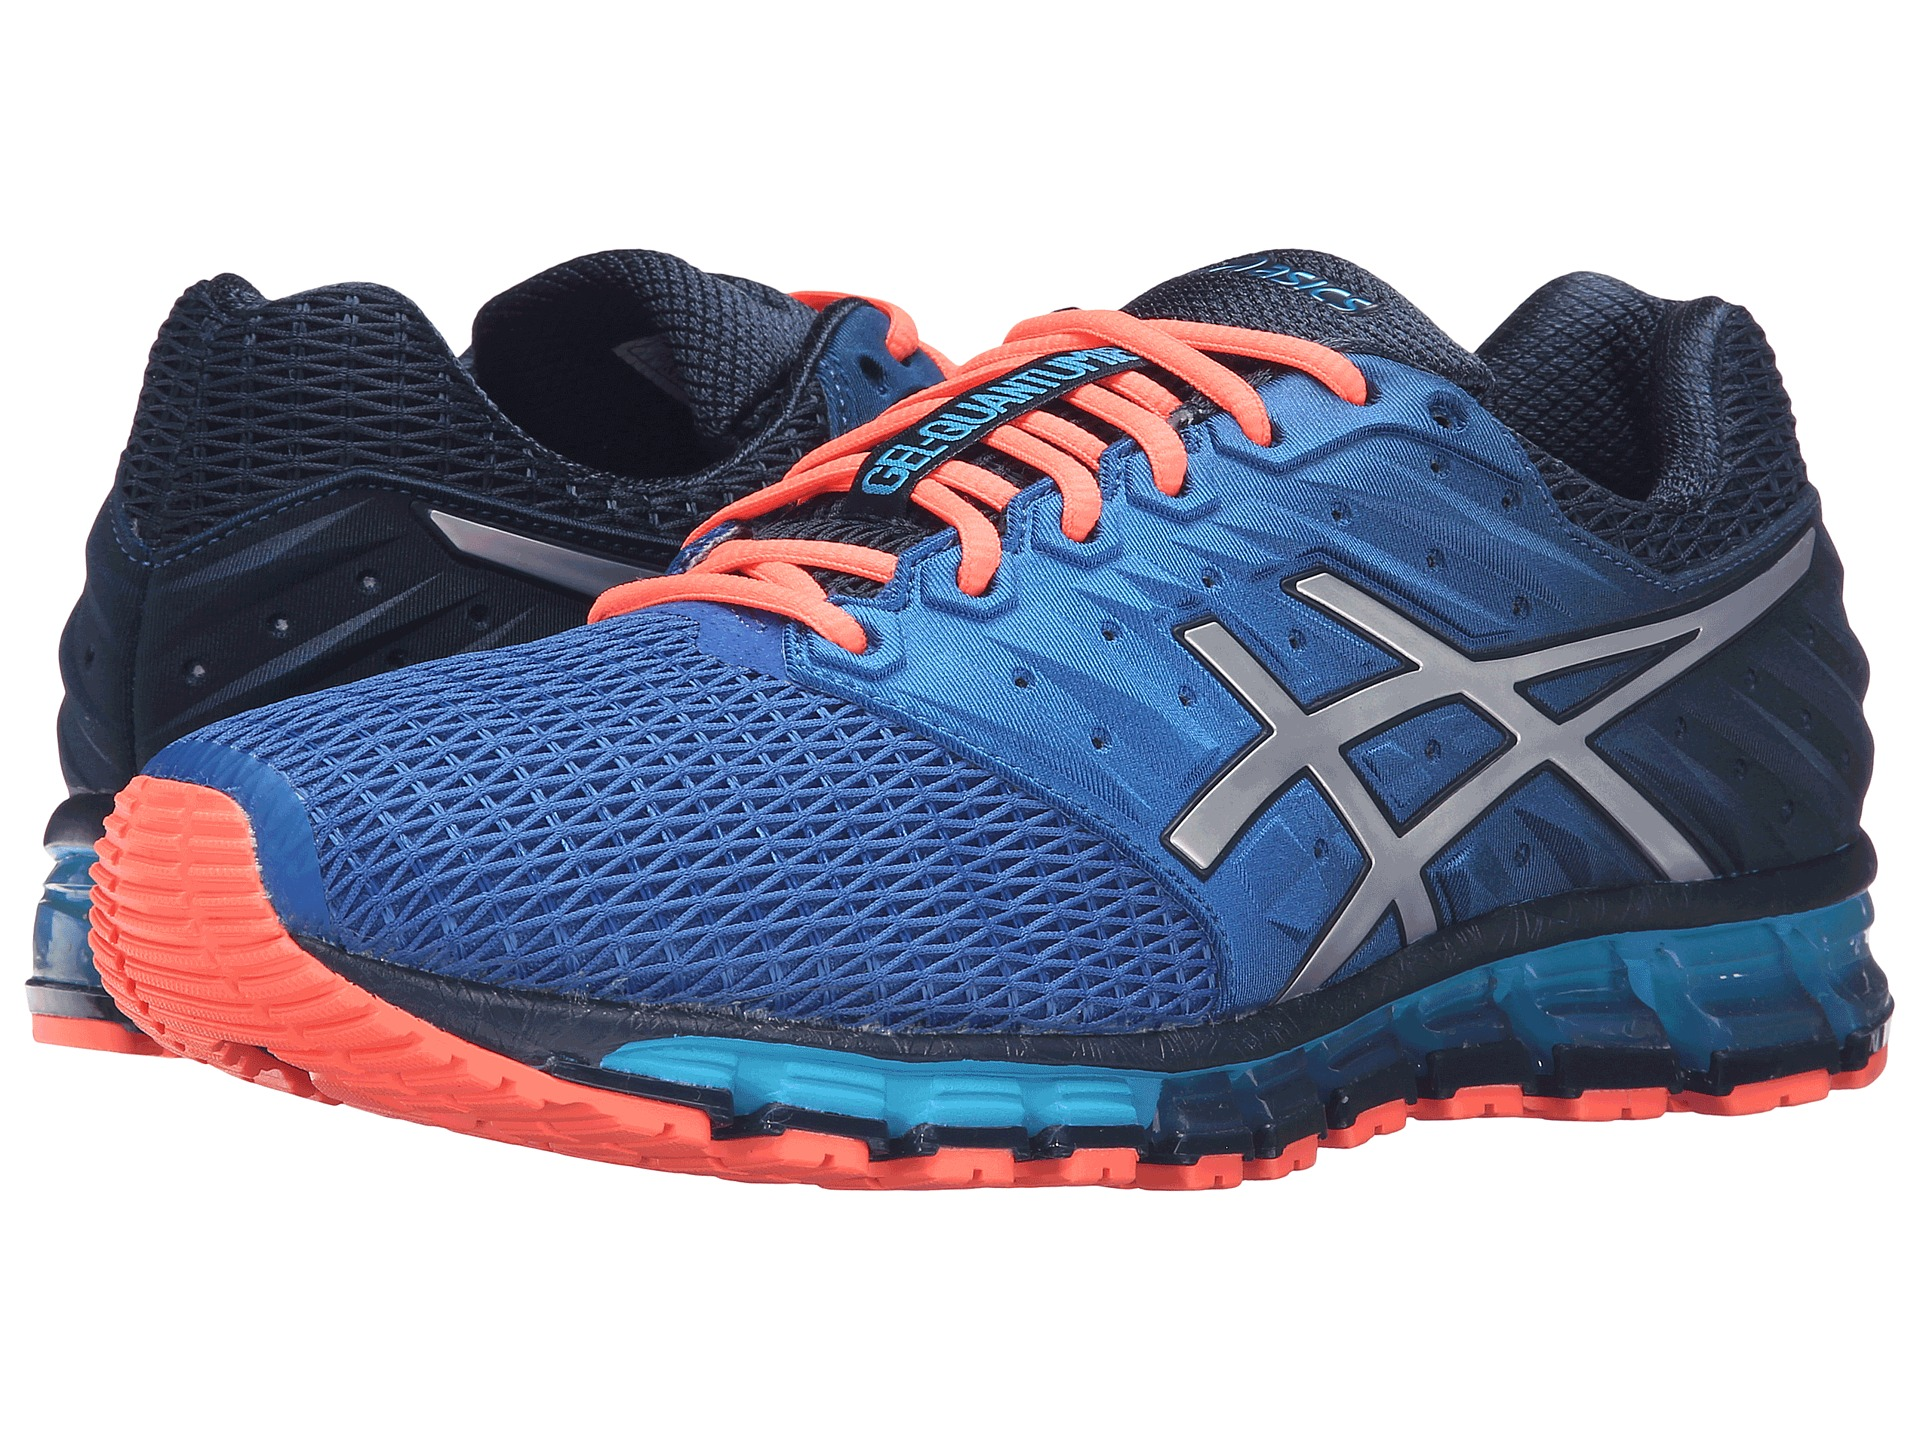 asics gel quantum 180 2 dark navy silver flash coral free shipping both ways. Black Bedroom Furniture Sets. Home Design Ideas